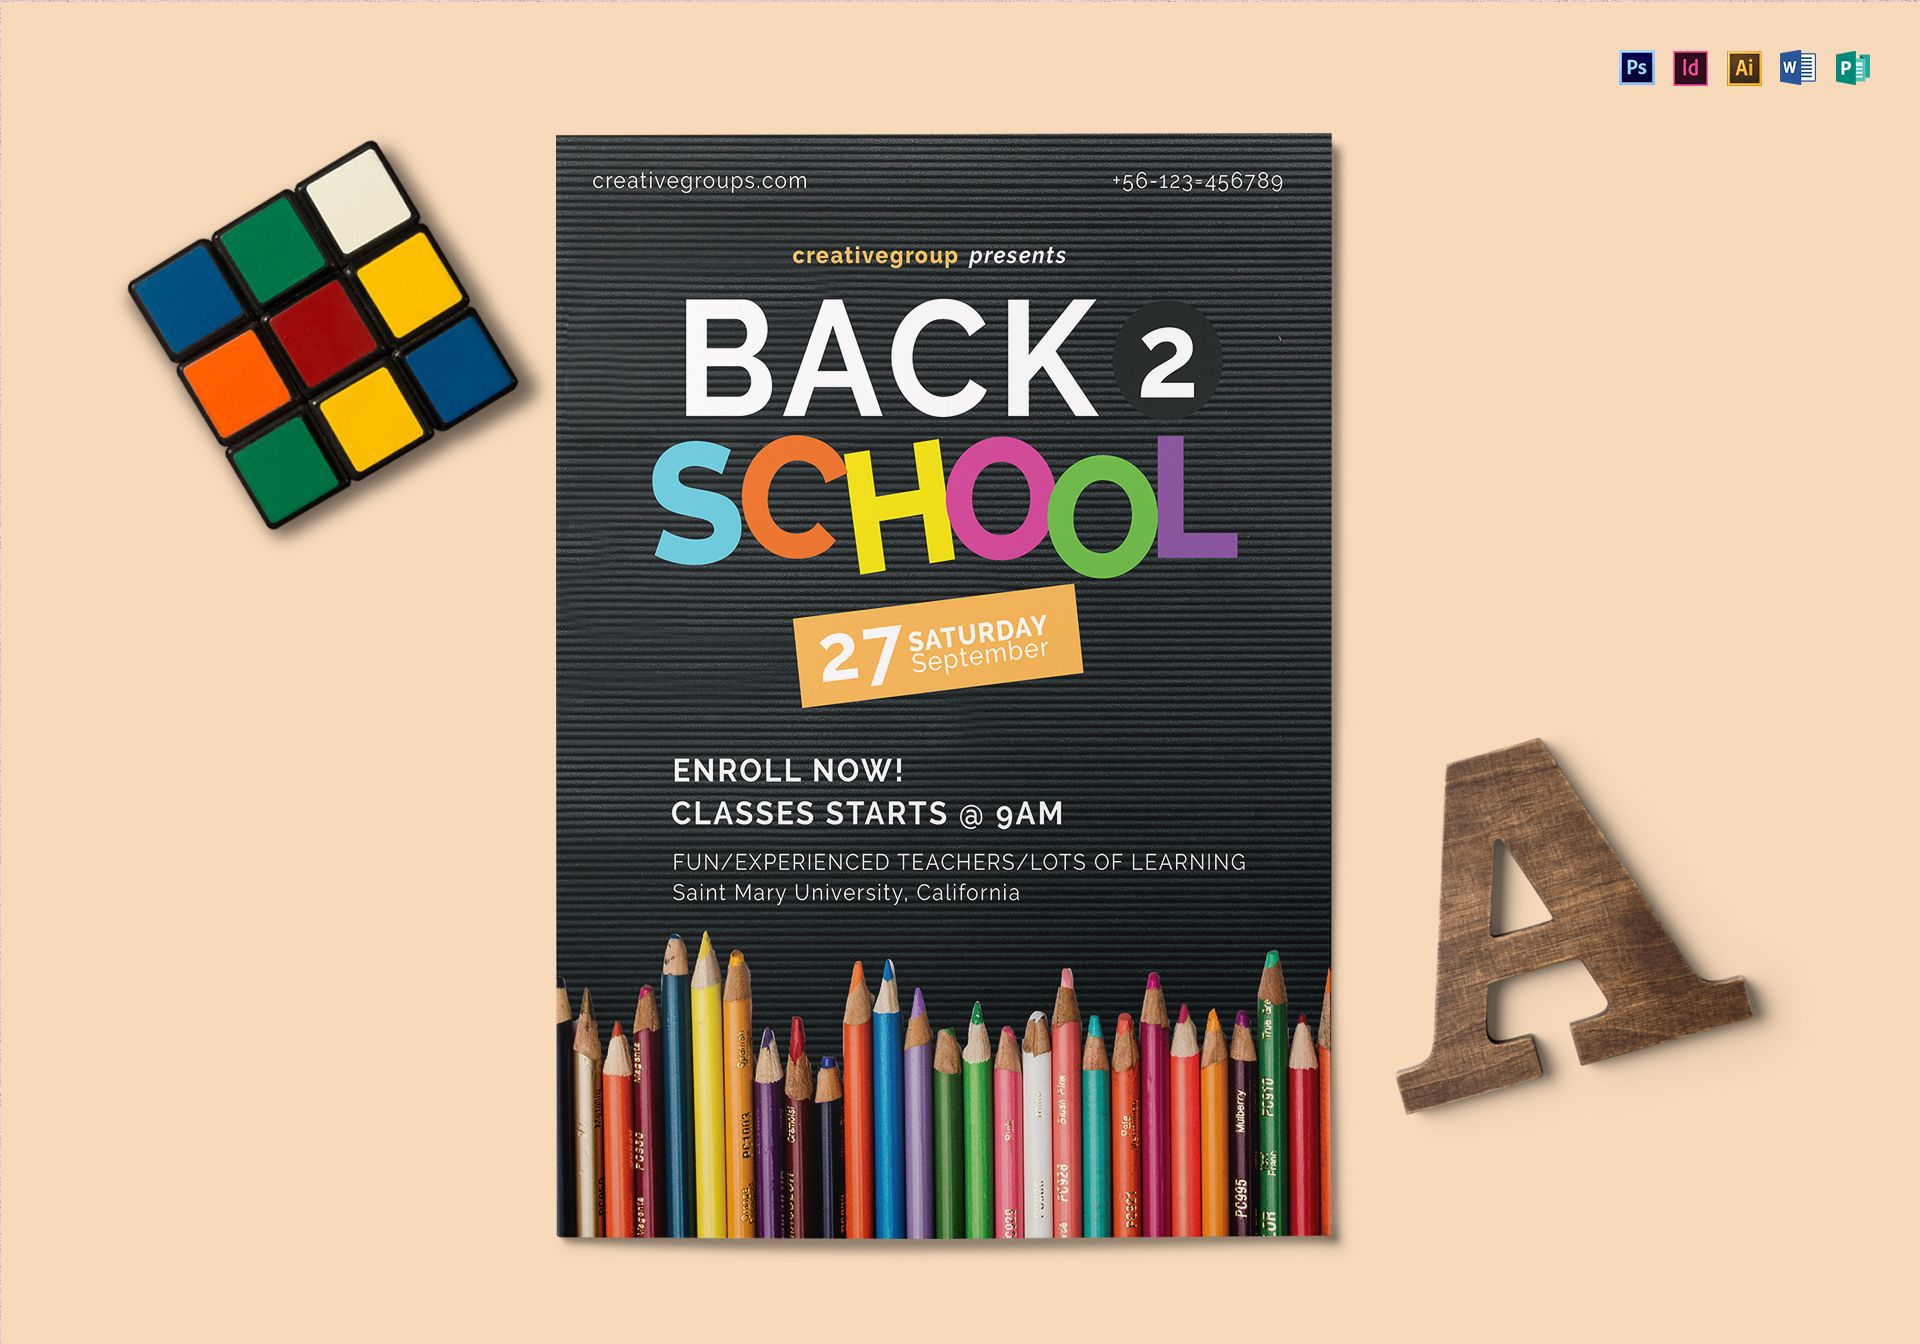 003 Fearsome Free School Flyer Design Template Photo  Templates Creative Education PosterFull